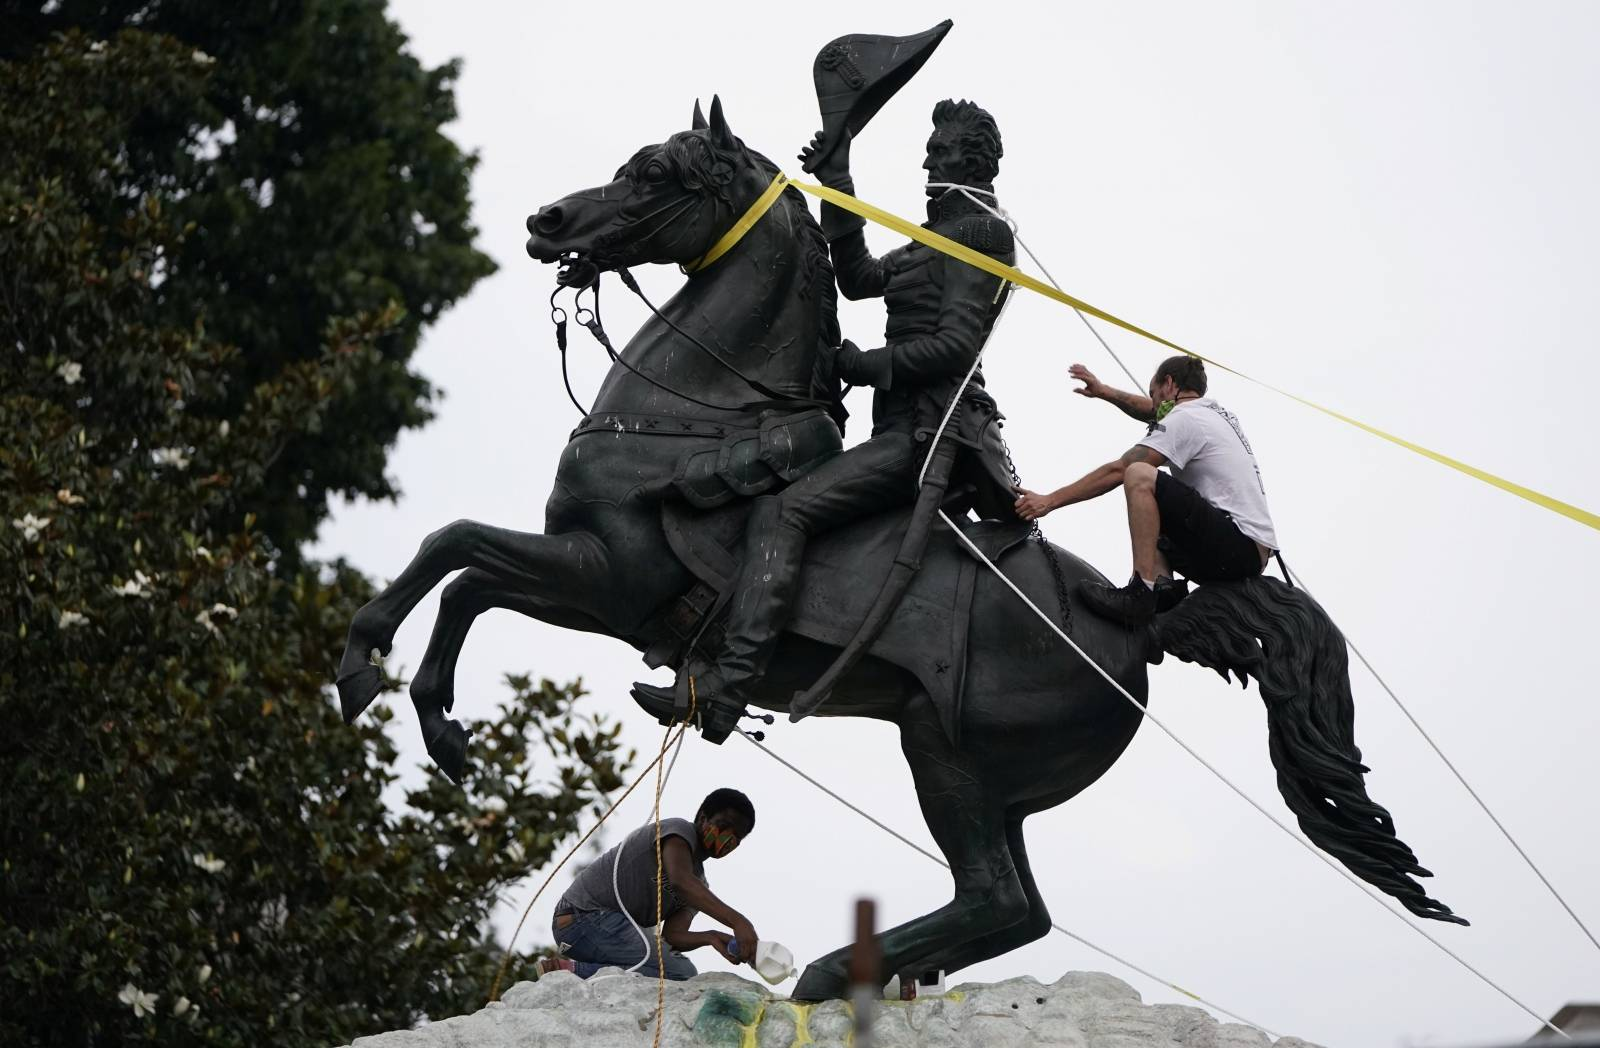 Protestors try to pull down statue of U.S. President Andrew Jackson in front of the White House in an attempt to pull it down  in Washington